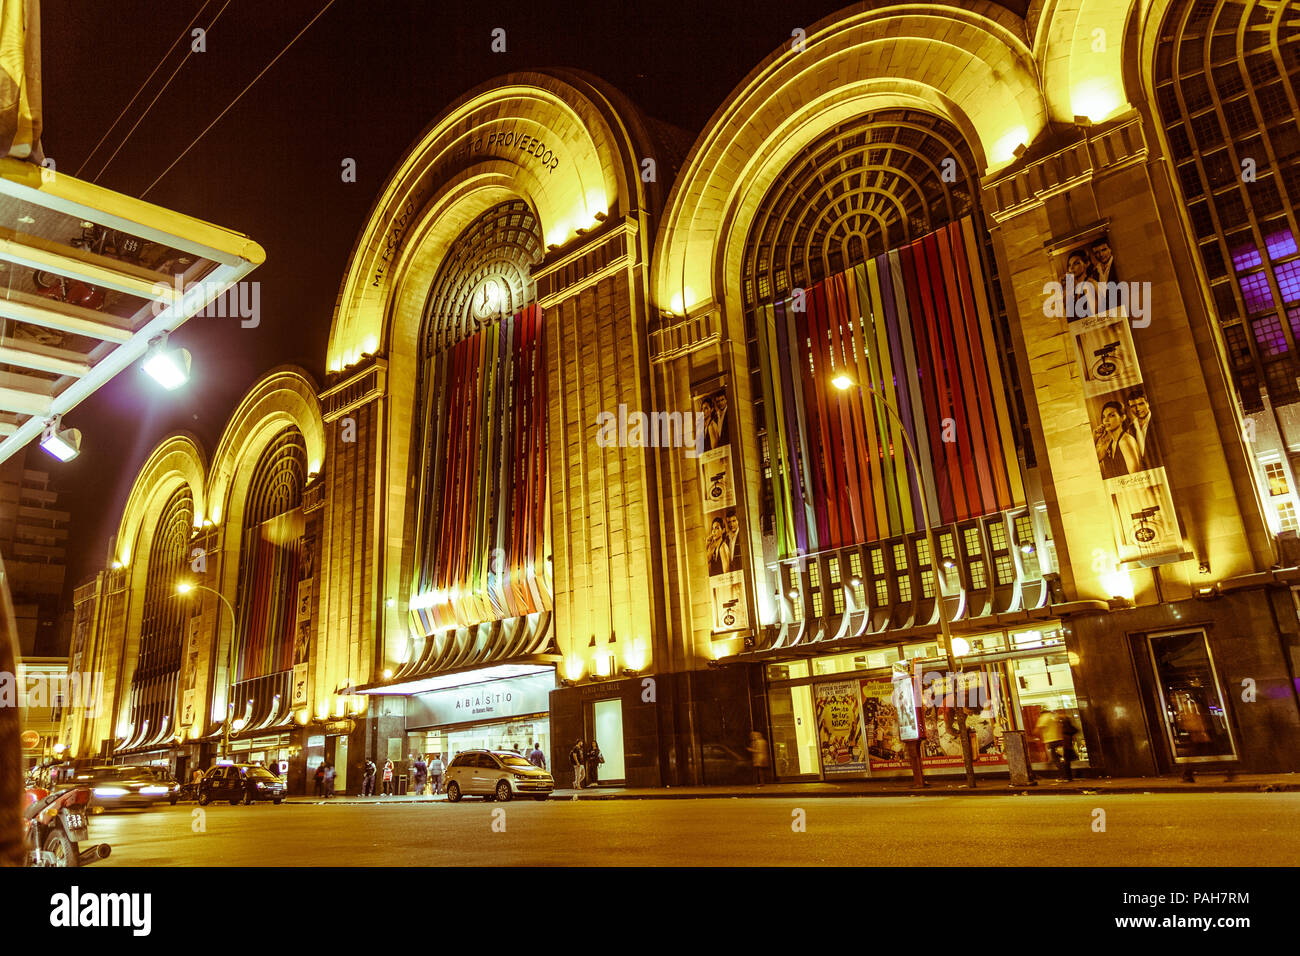 BUENOS AIRES, ARGENTINA - SEPTEMBER 20: Corrientes Street by night. Abasto building facade at Buenos Aires, Argentina.  Vintage and yesteryear effect - Stock Image